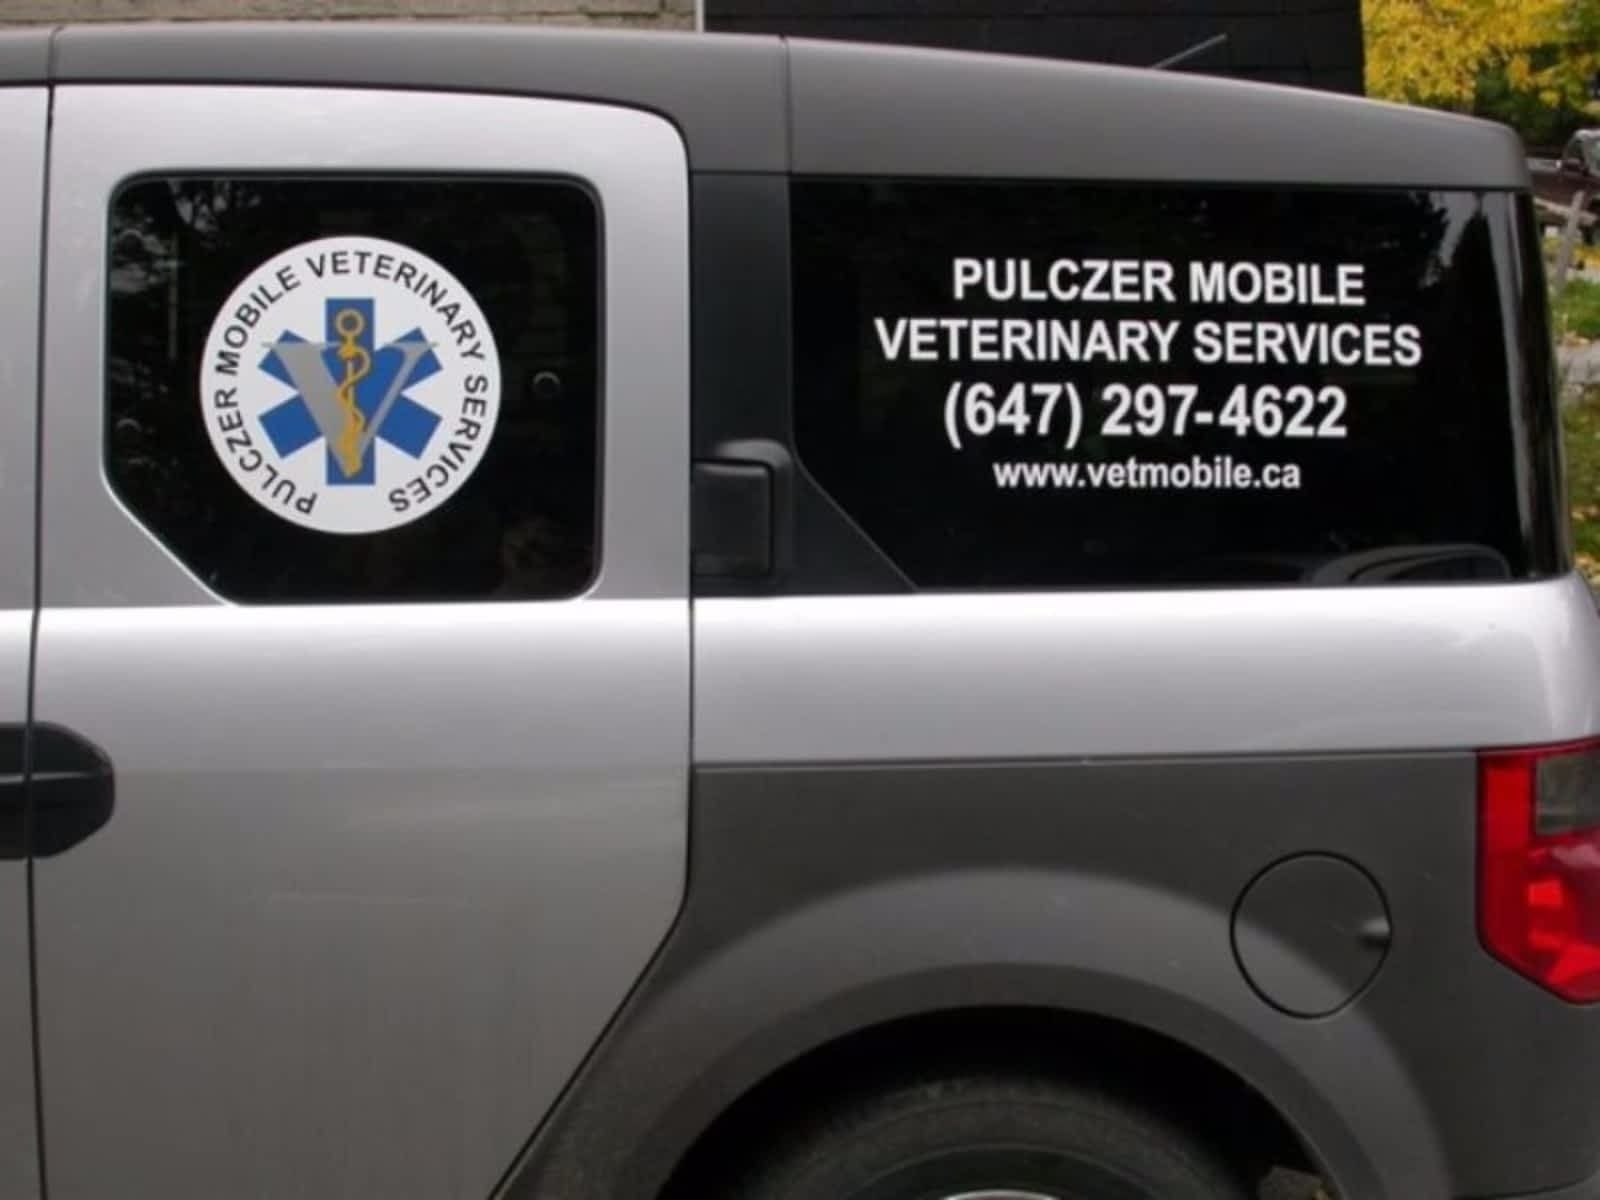 Mobile Vet Near Me Pulczer Mobile Veterinary Services Opening Hours 2 Plaisance